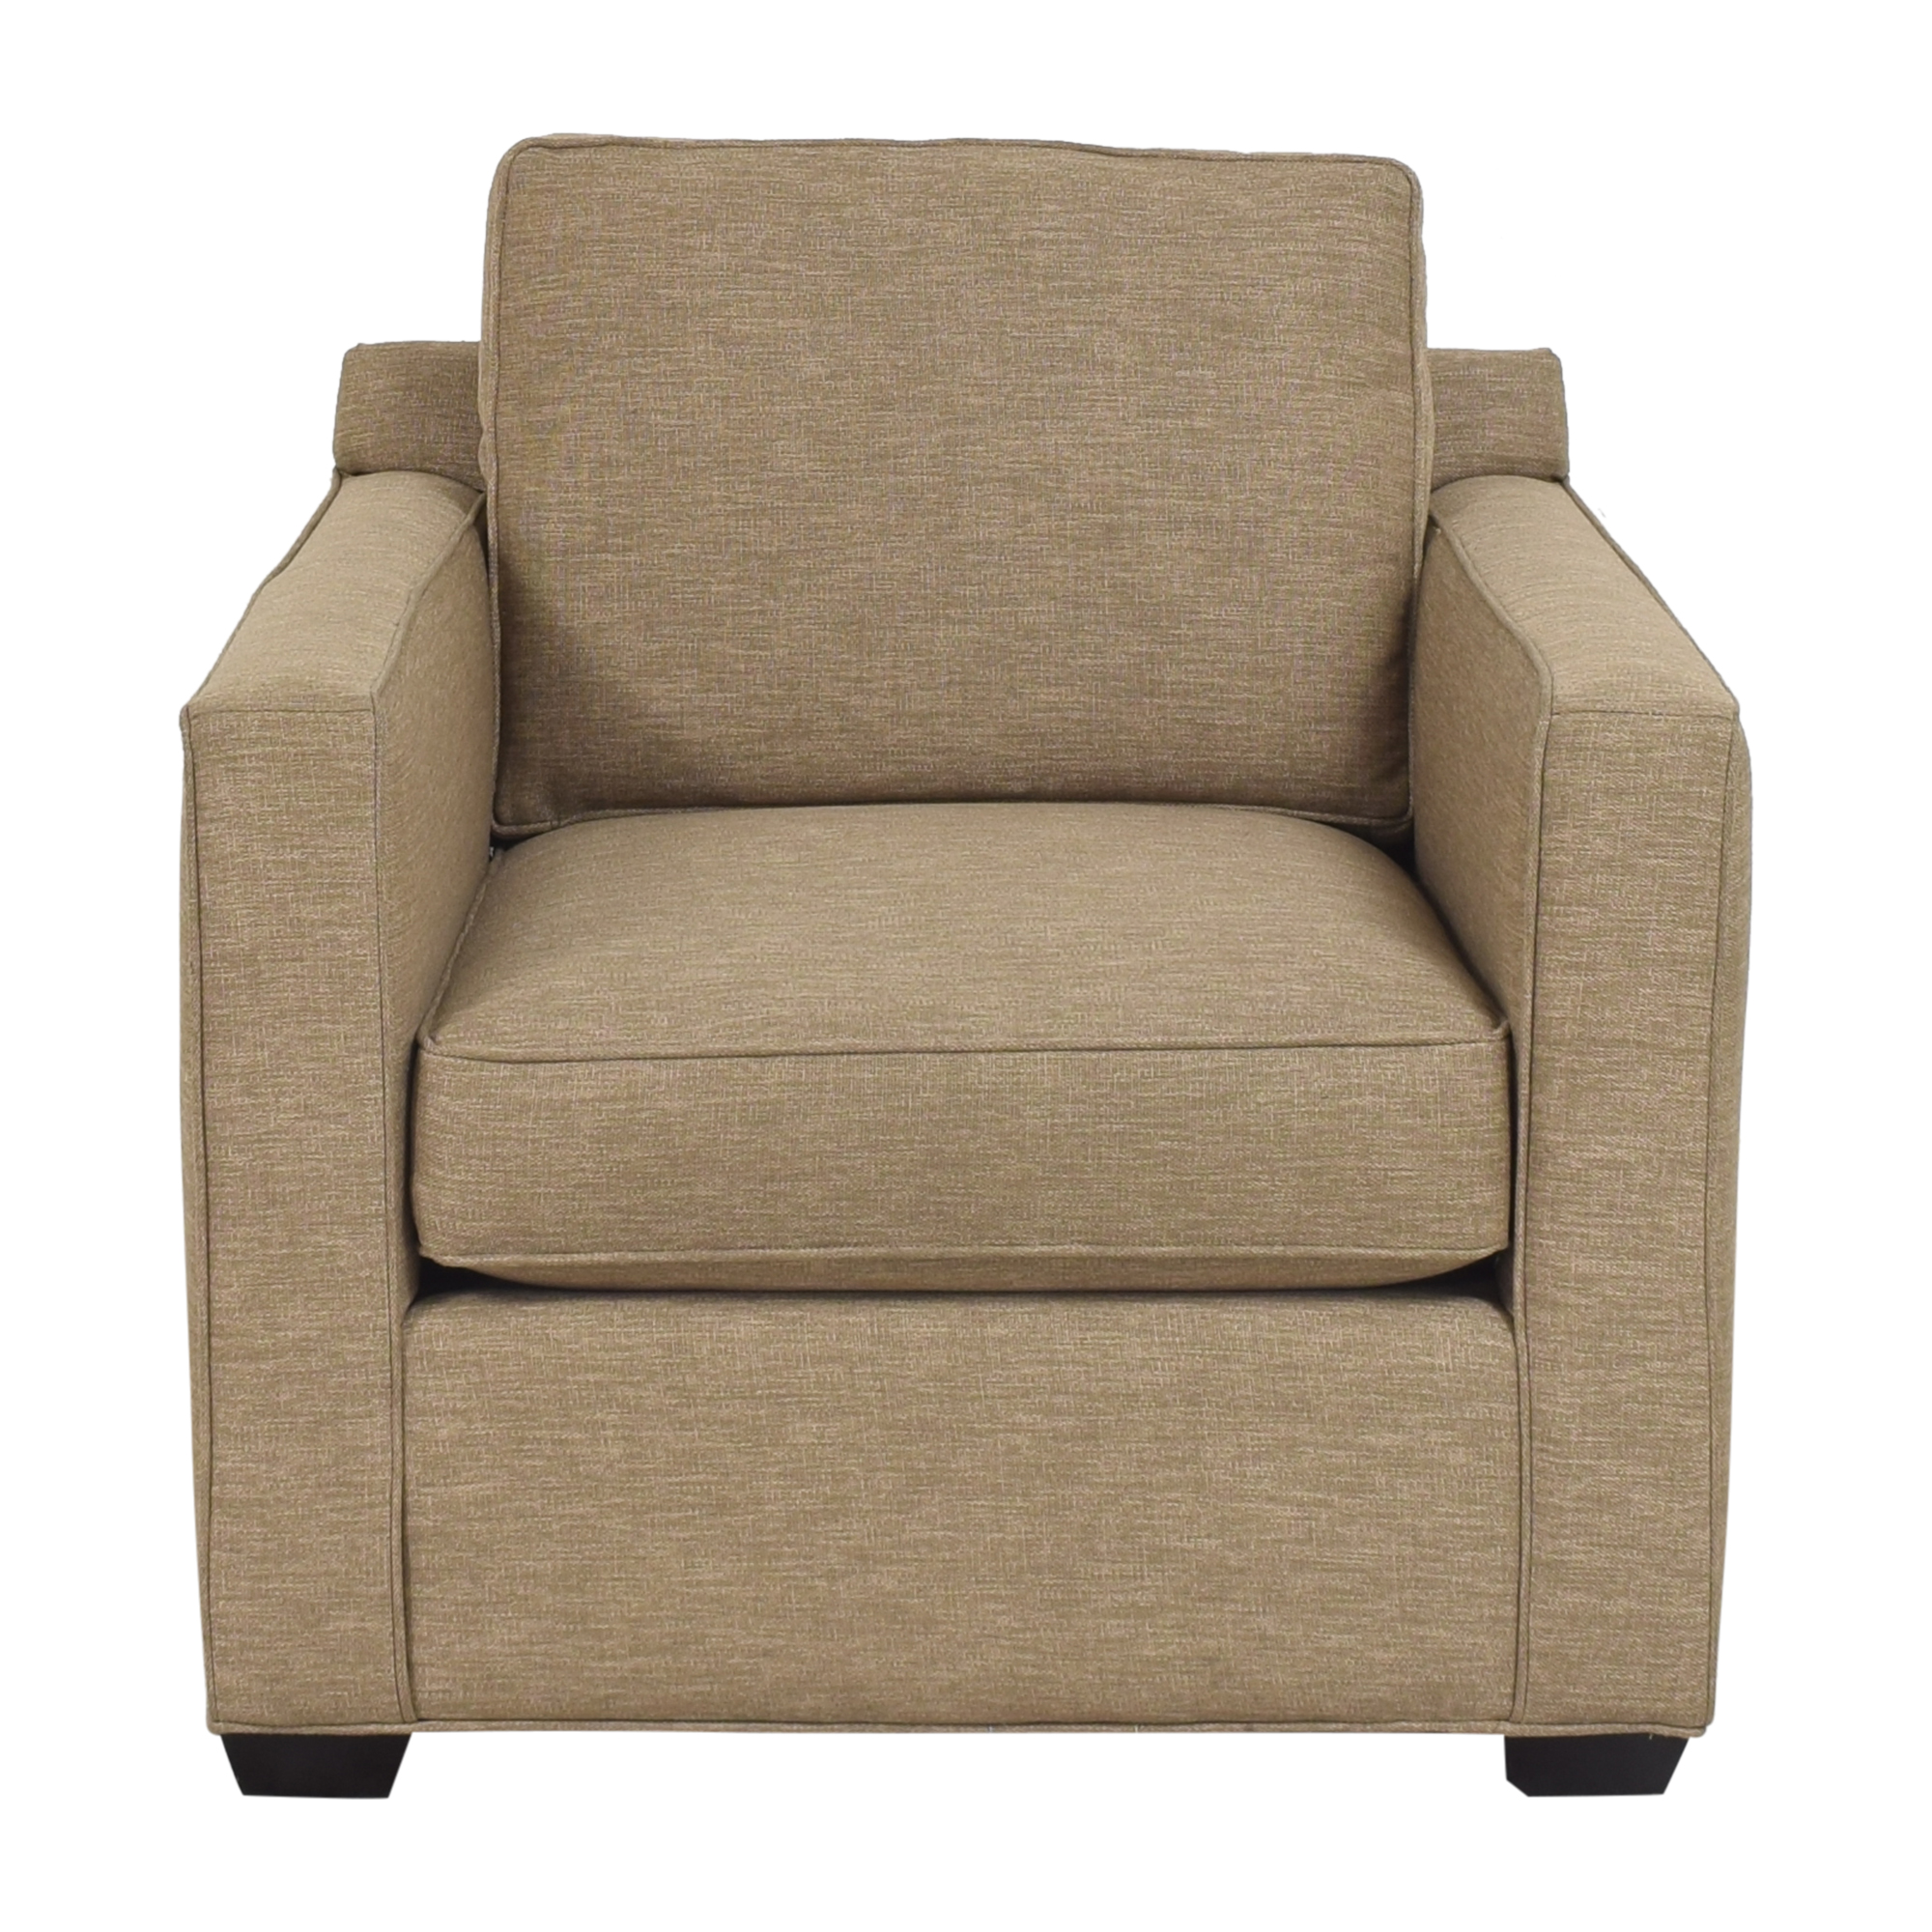 Crate & Barrel Crate & Barrel Barrett Track Arm Chair for sale